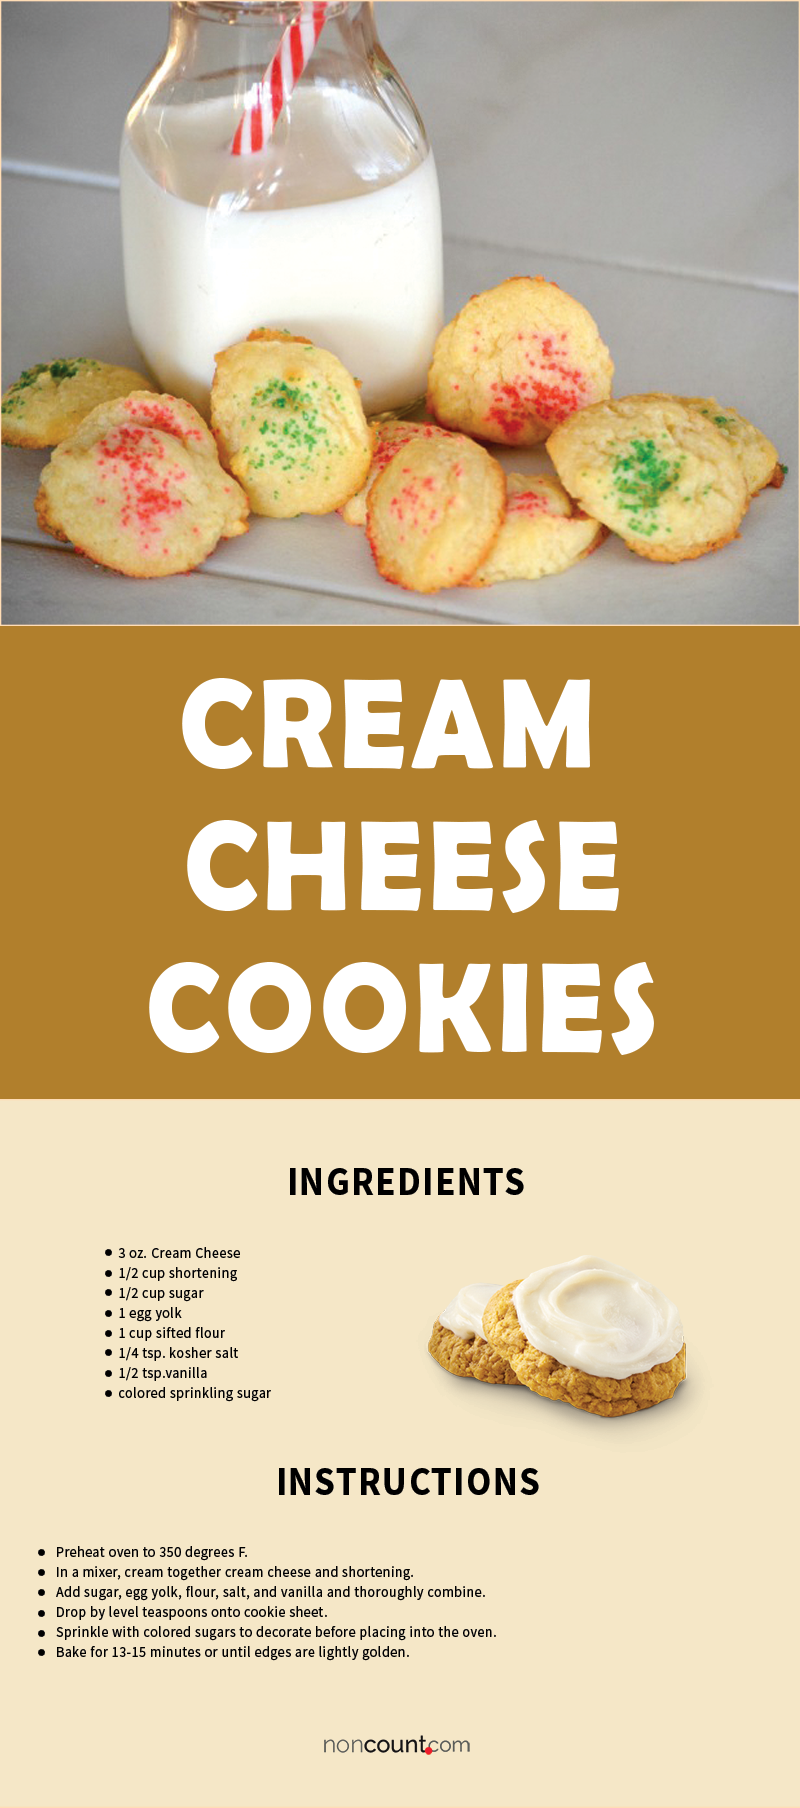 Cream Cheese Cookies Recipe Image